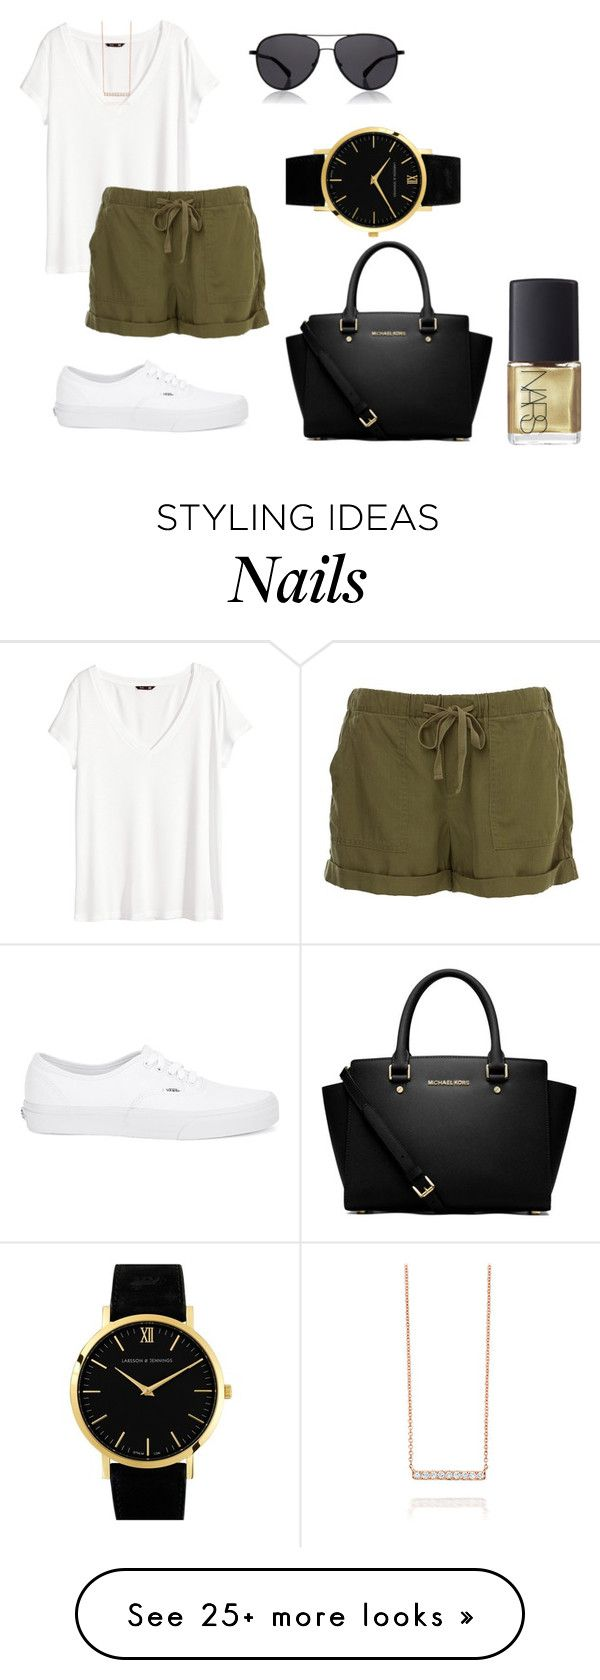 """""""lazy day"""" by bintoman on Polyvore featuring H&M, Vans, The Row, MICHAEL Michael Kors, Larsson & Jennings and NARS Cosmetics"""